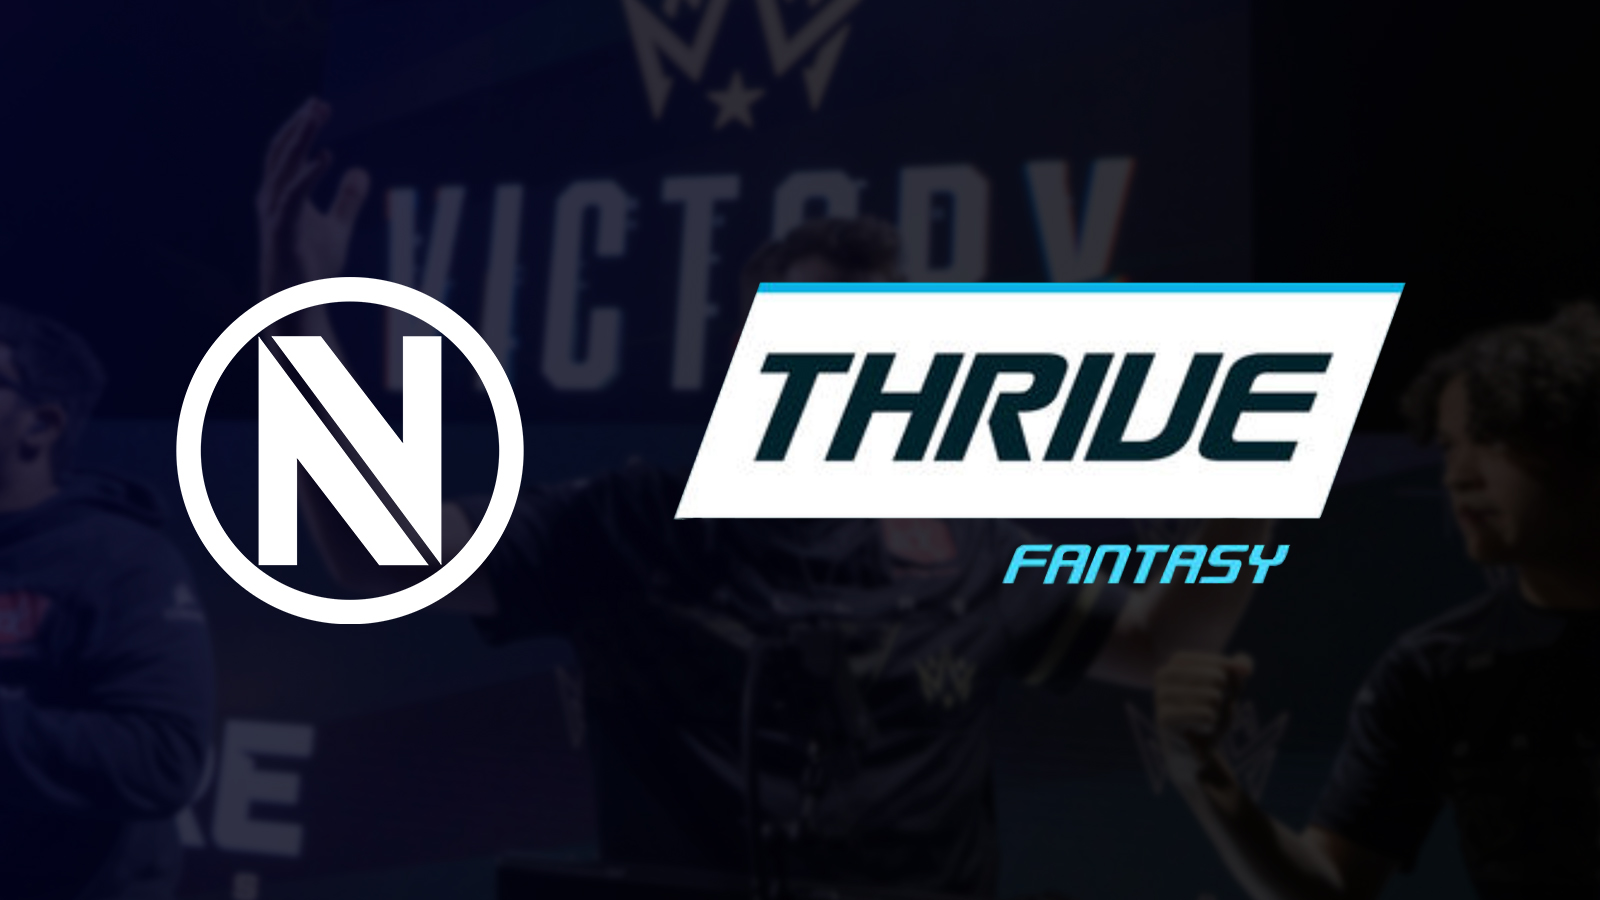 Envy ThriveFantasy Partnership